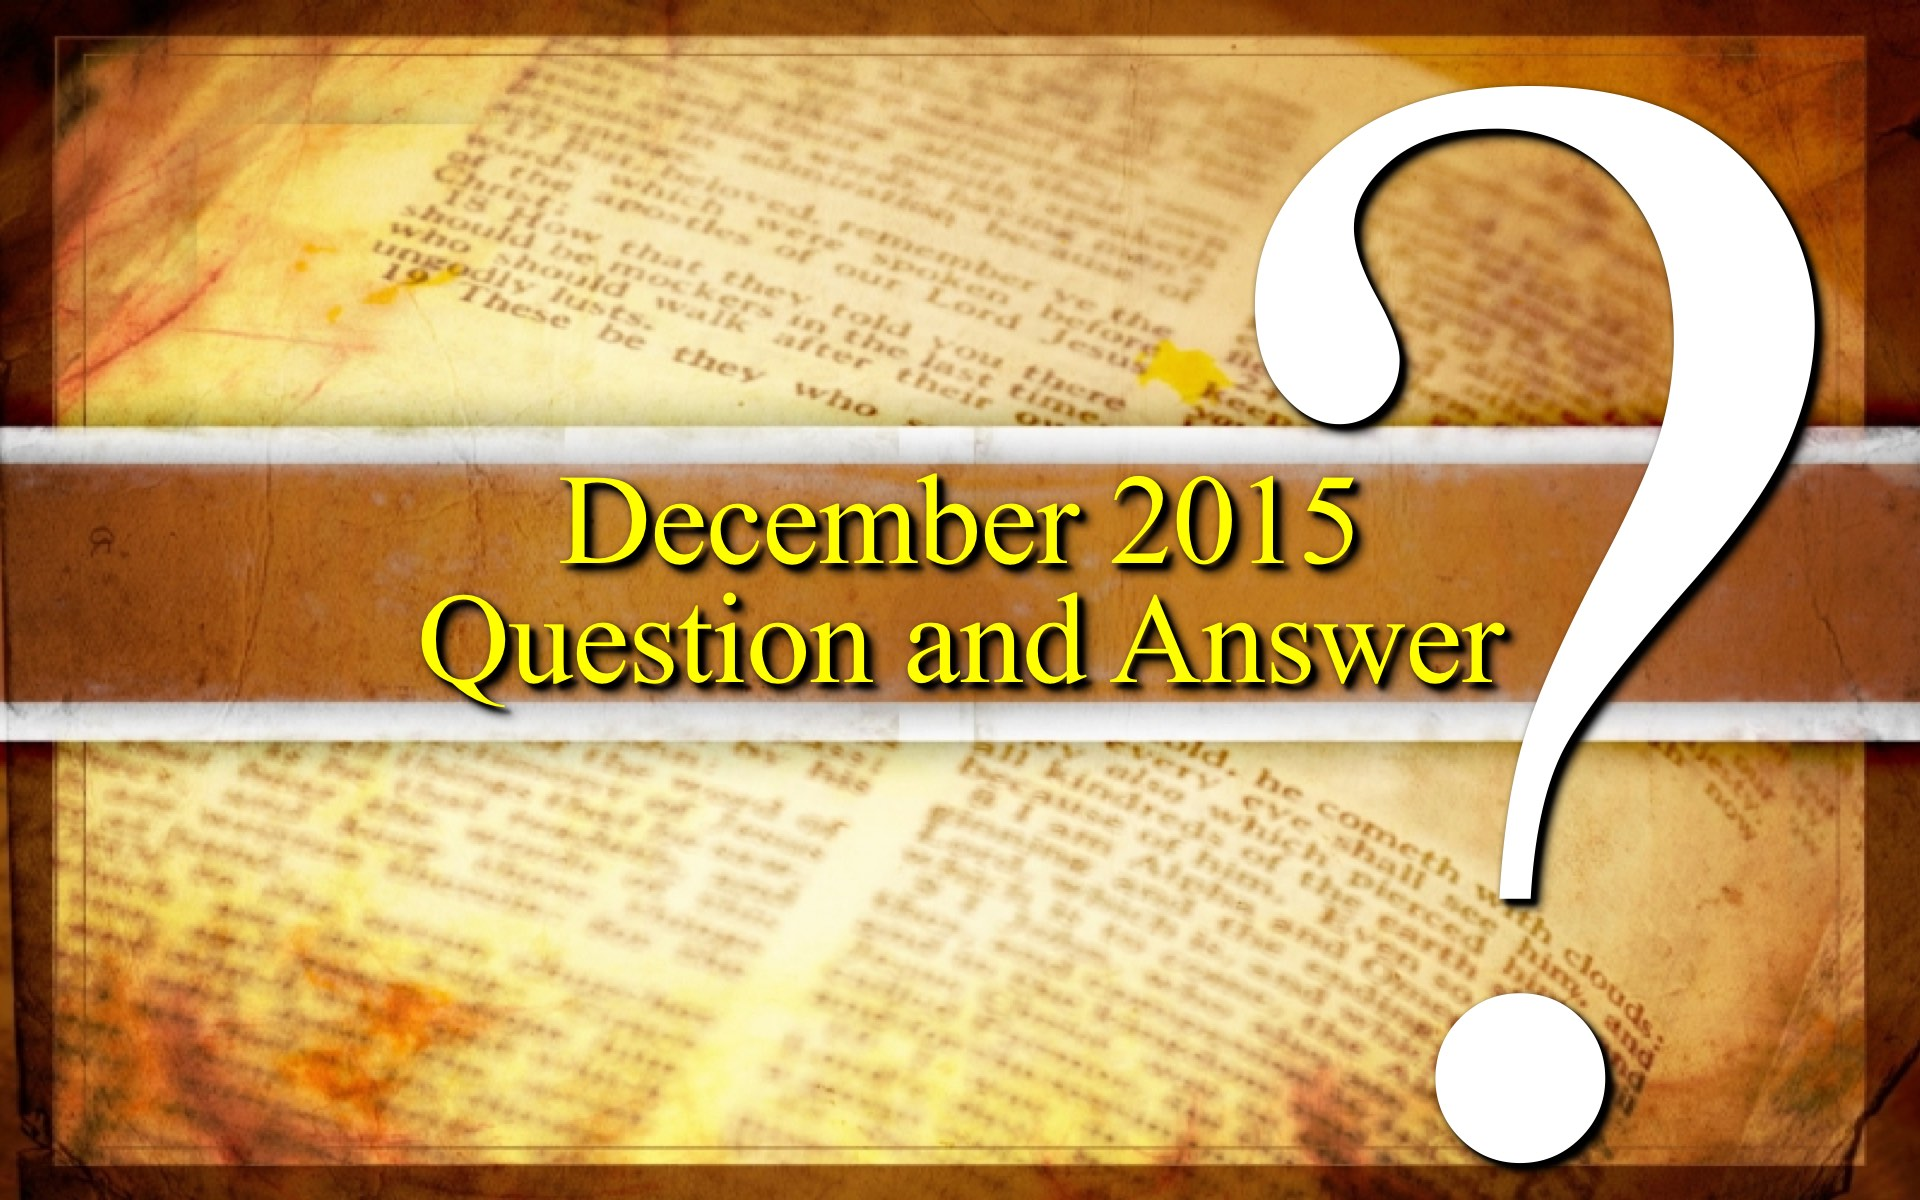 December 2015 Question and Answer